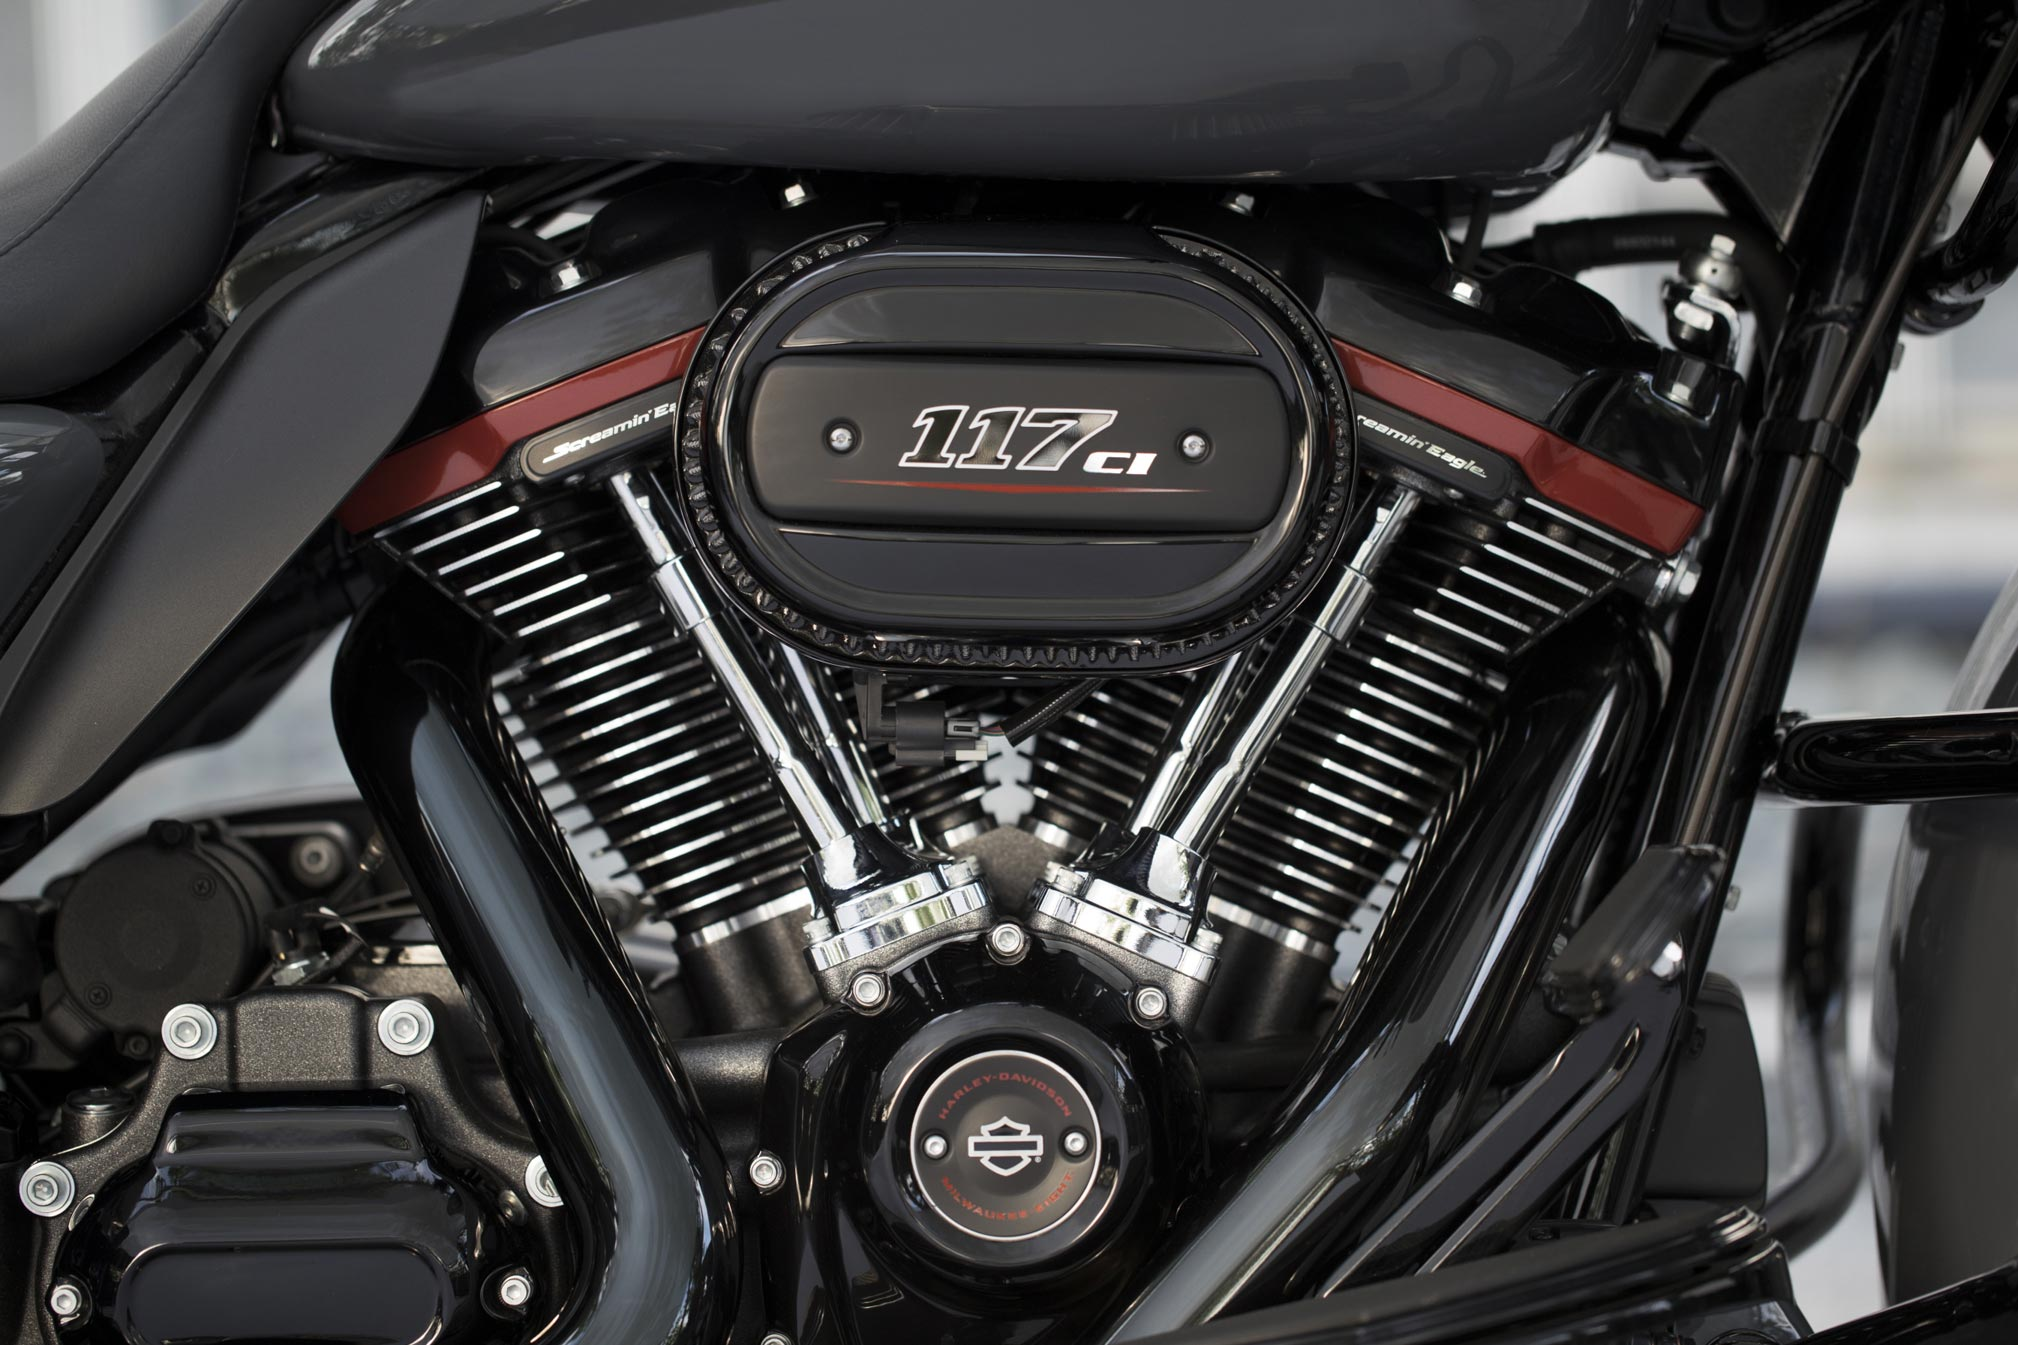 Blacked Out Street Glide >> Harley-Davidson Unleashes Five New Touring Bikes With More Power, Comfort & Handling To Go The ...